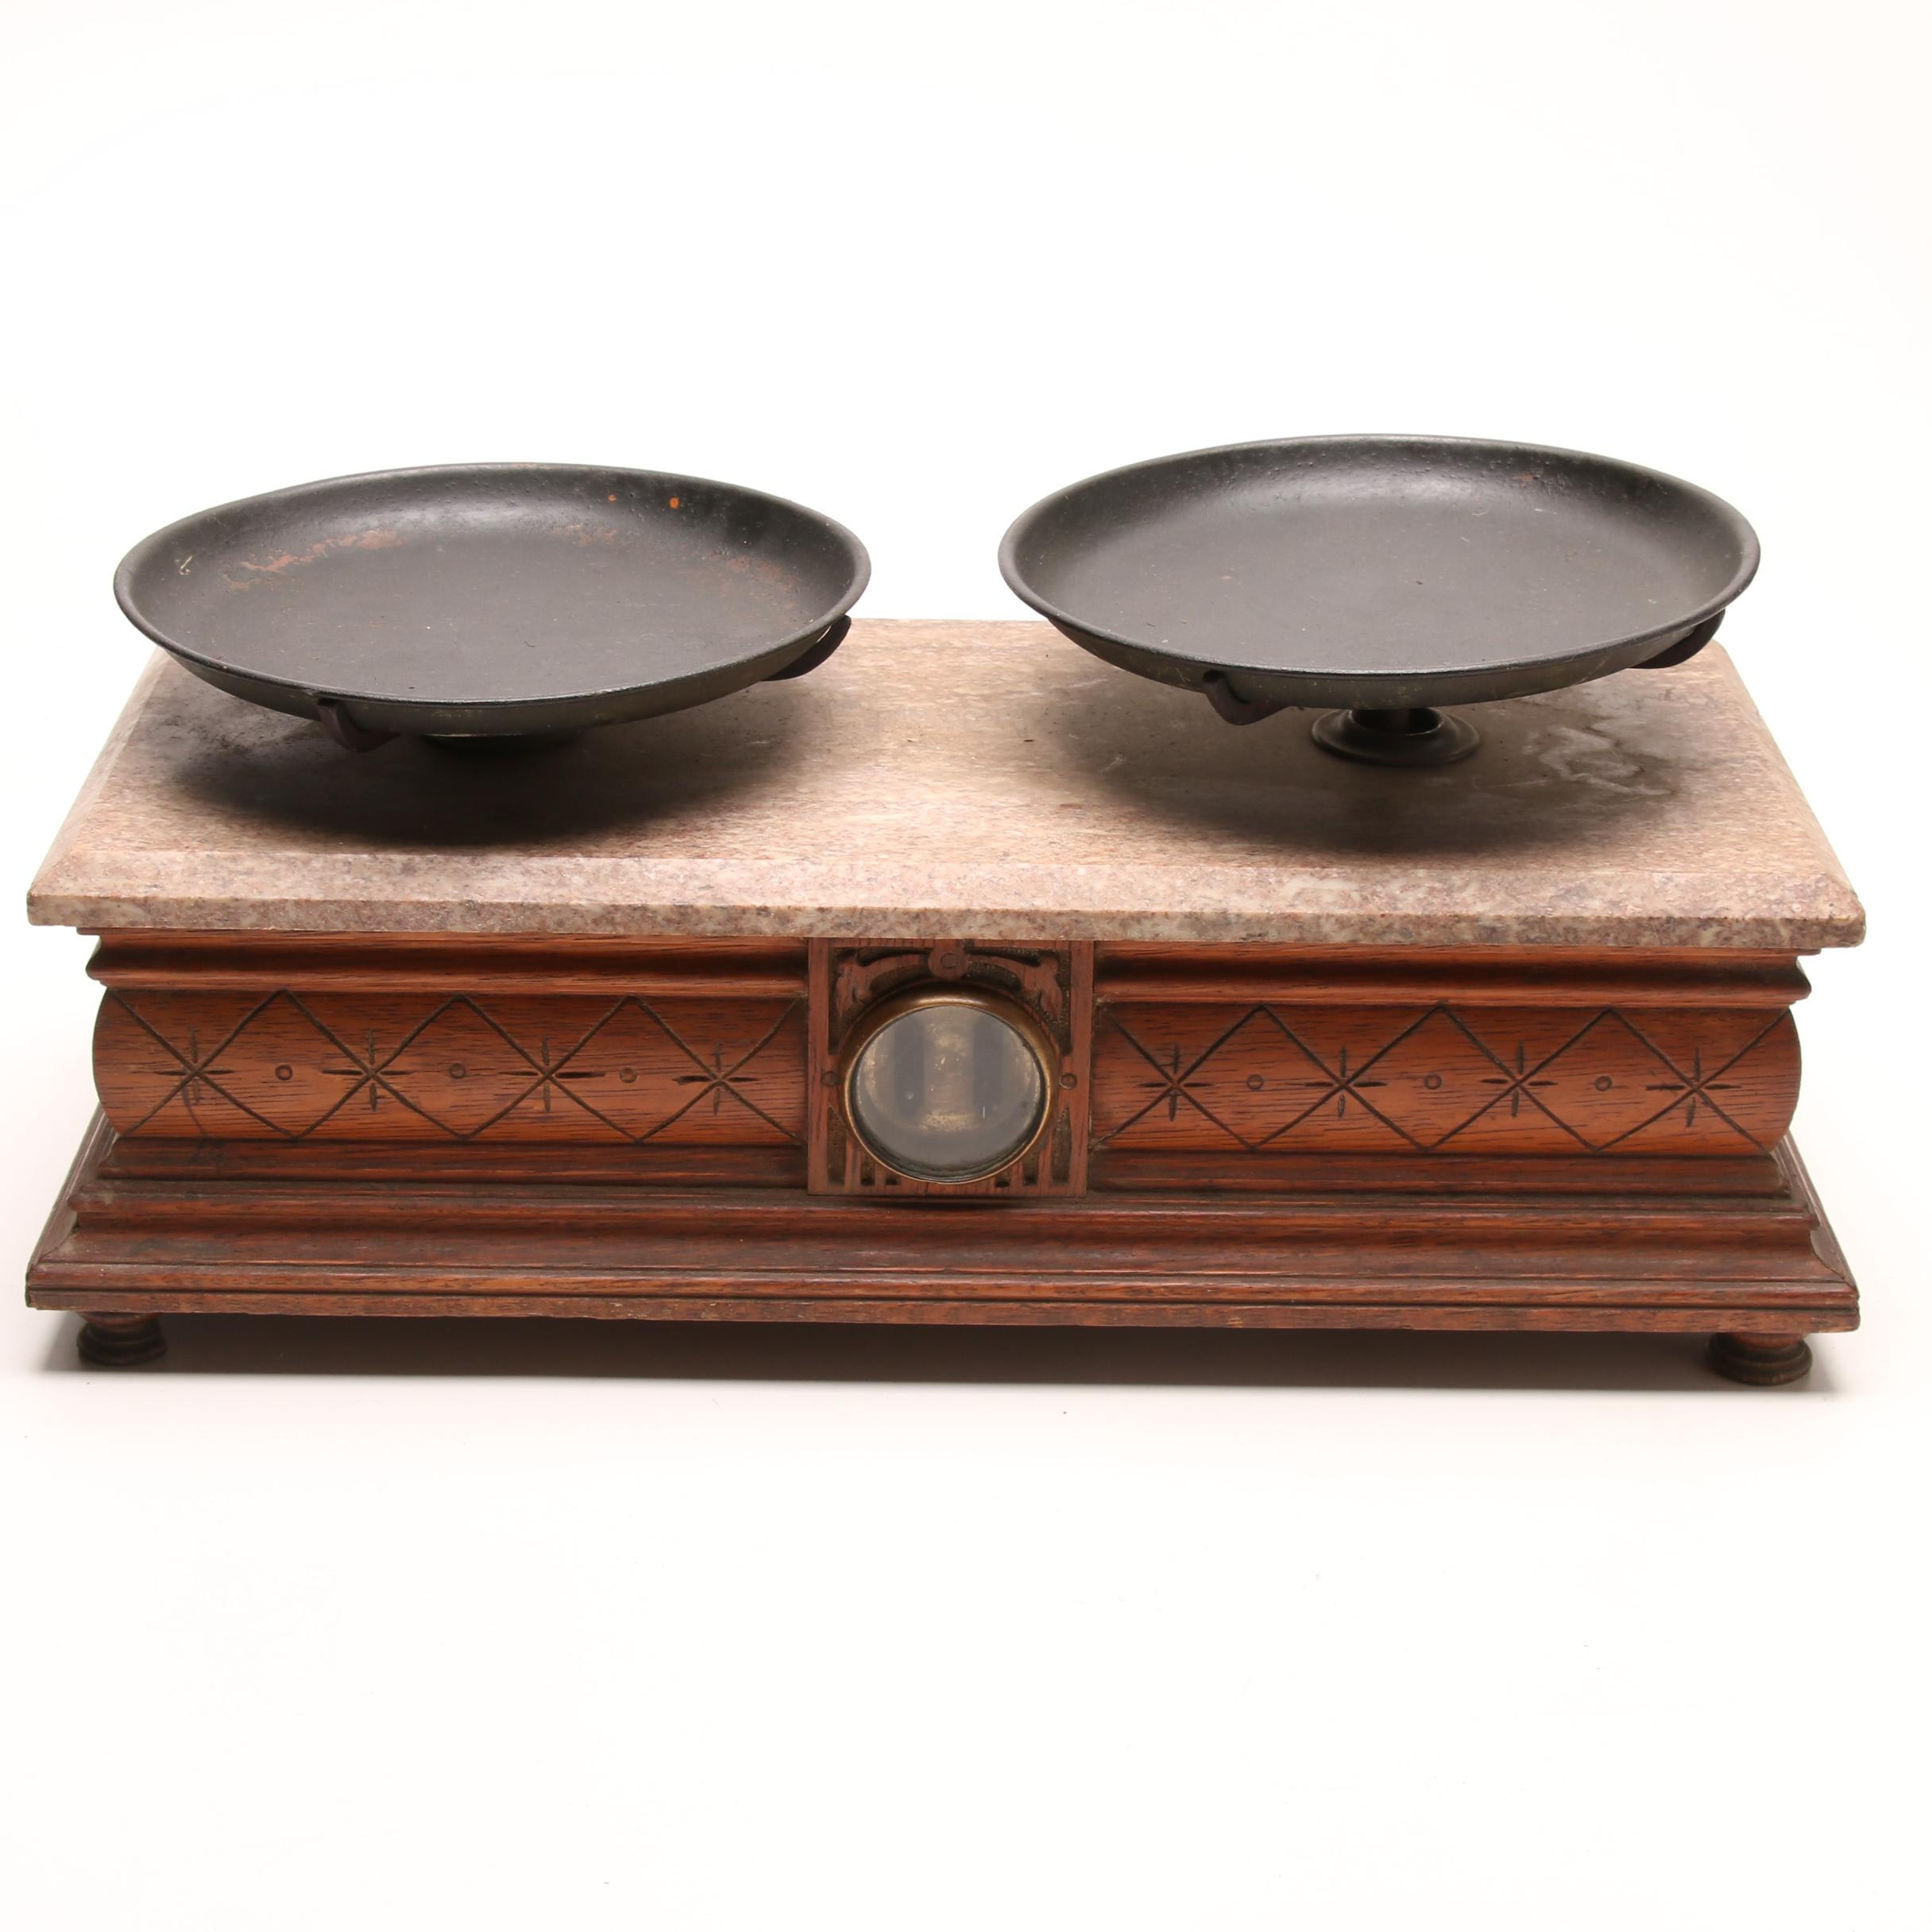 Antique Balance Scale with Granite Top